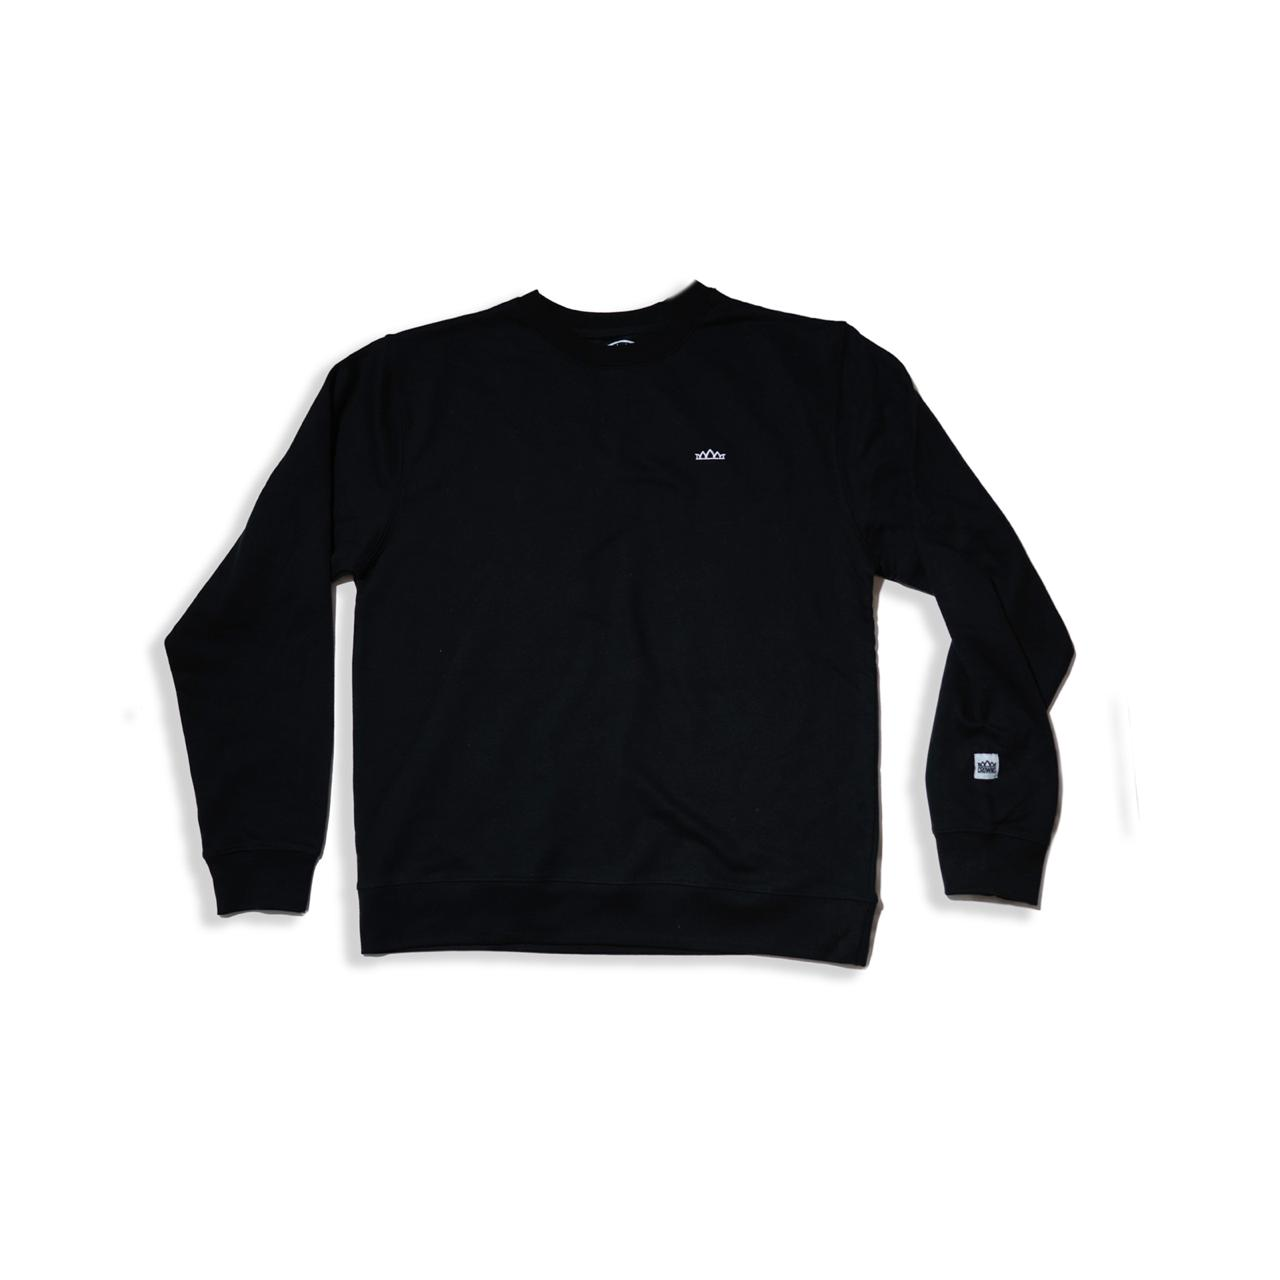 Premium Issue L/S Tee in Black